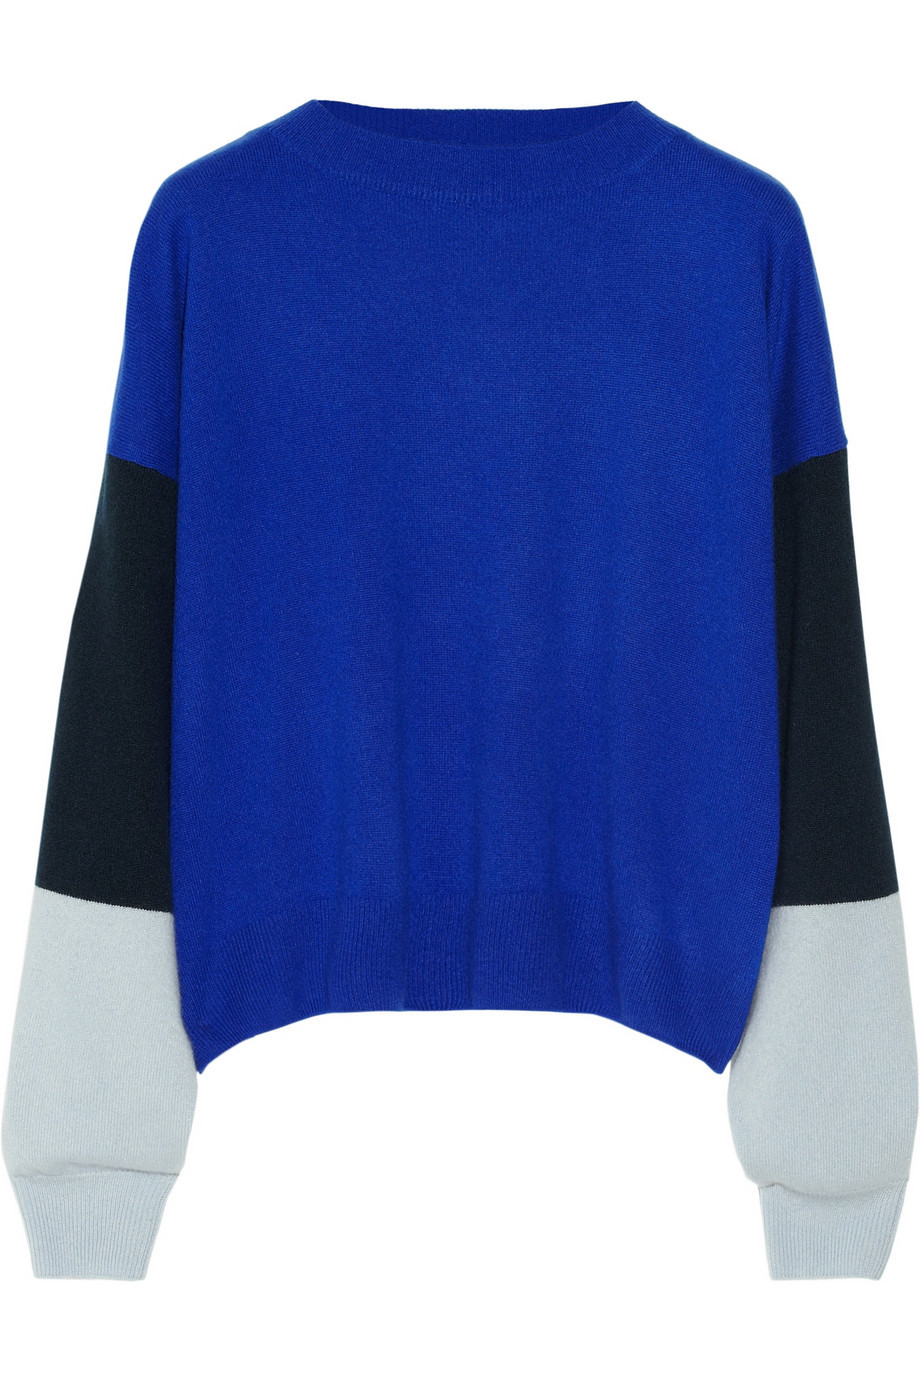 Stella McCartney   Color-block cashmere sweater   NET-A-PORTER.COM_files.jpg